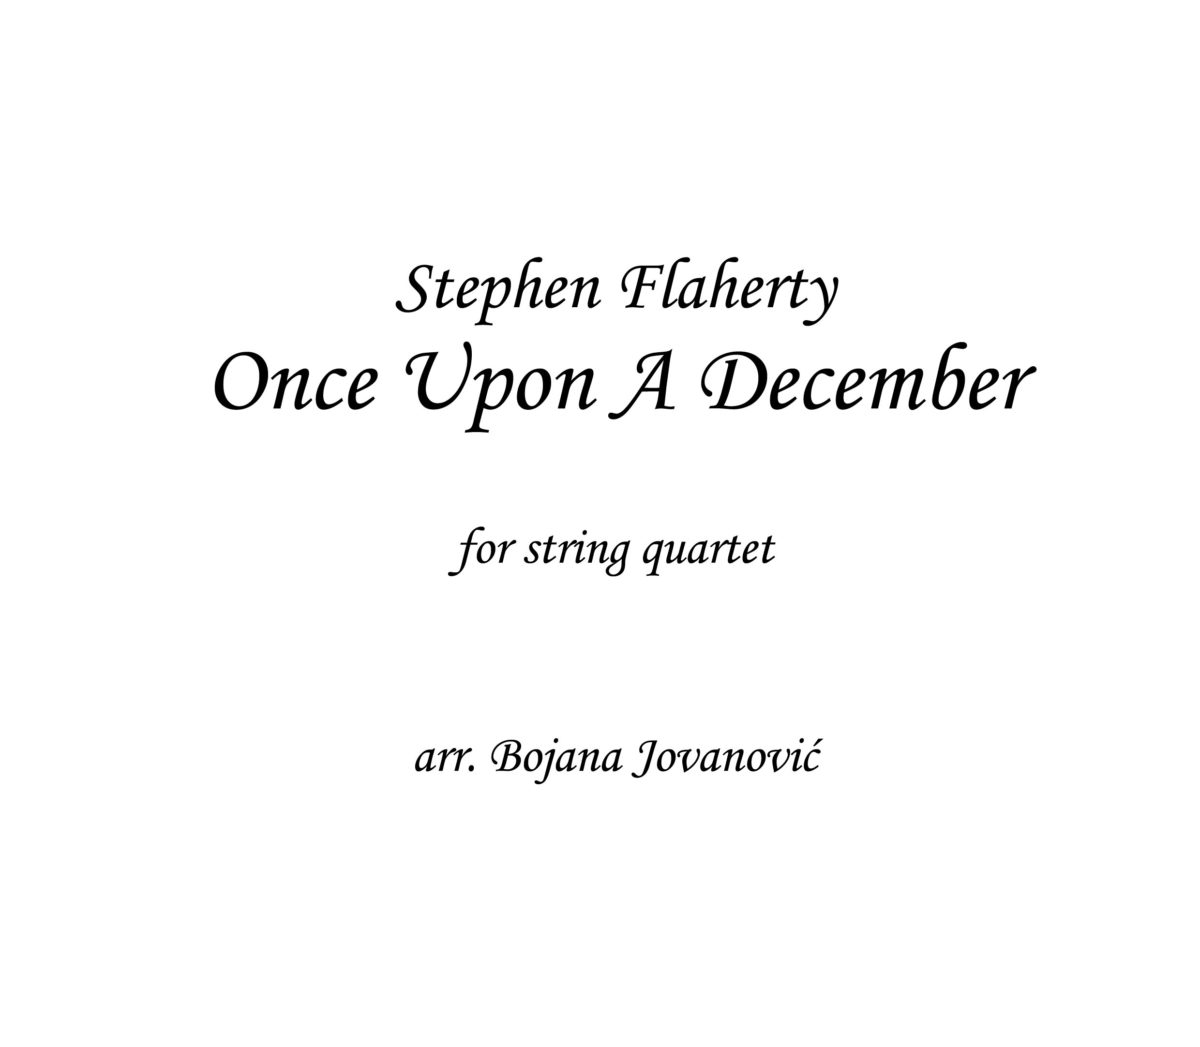 Once upon a December Sheet music (Anastasia)